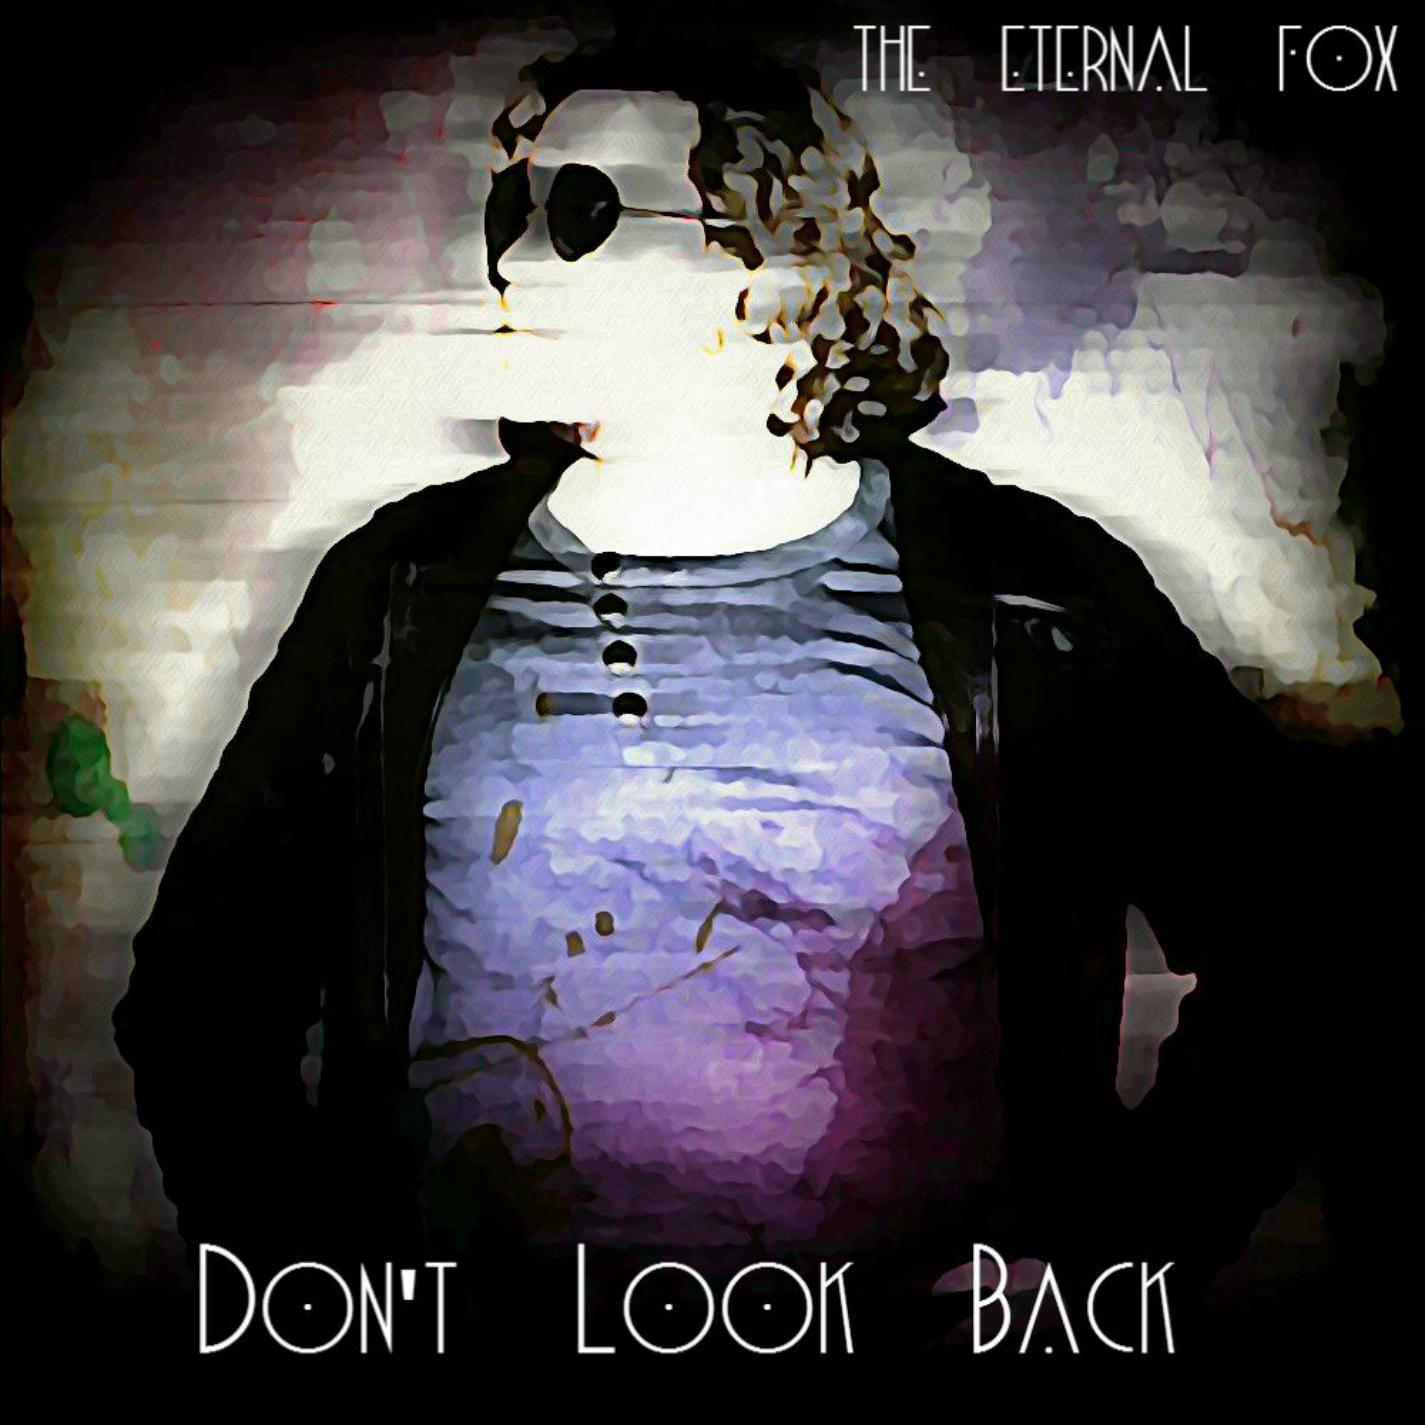 NEW RELEASE: DON'T LOOK BACK EP